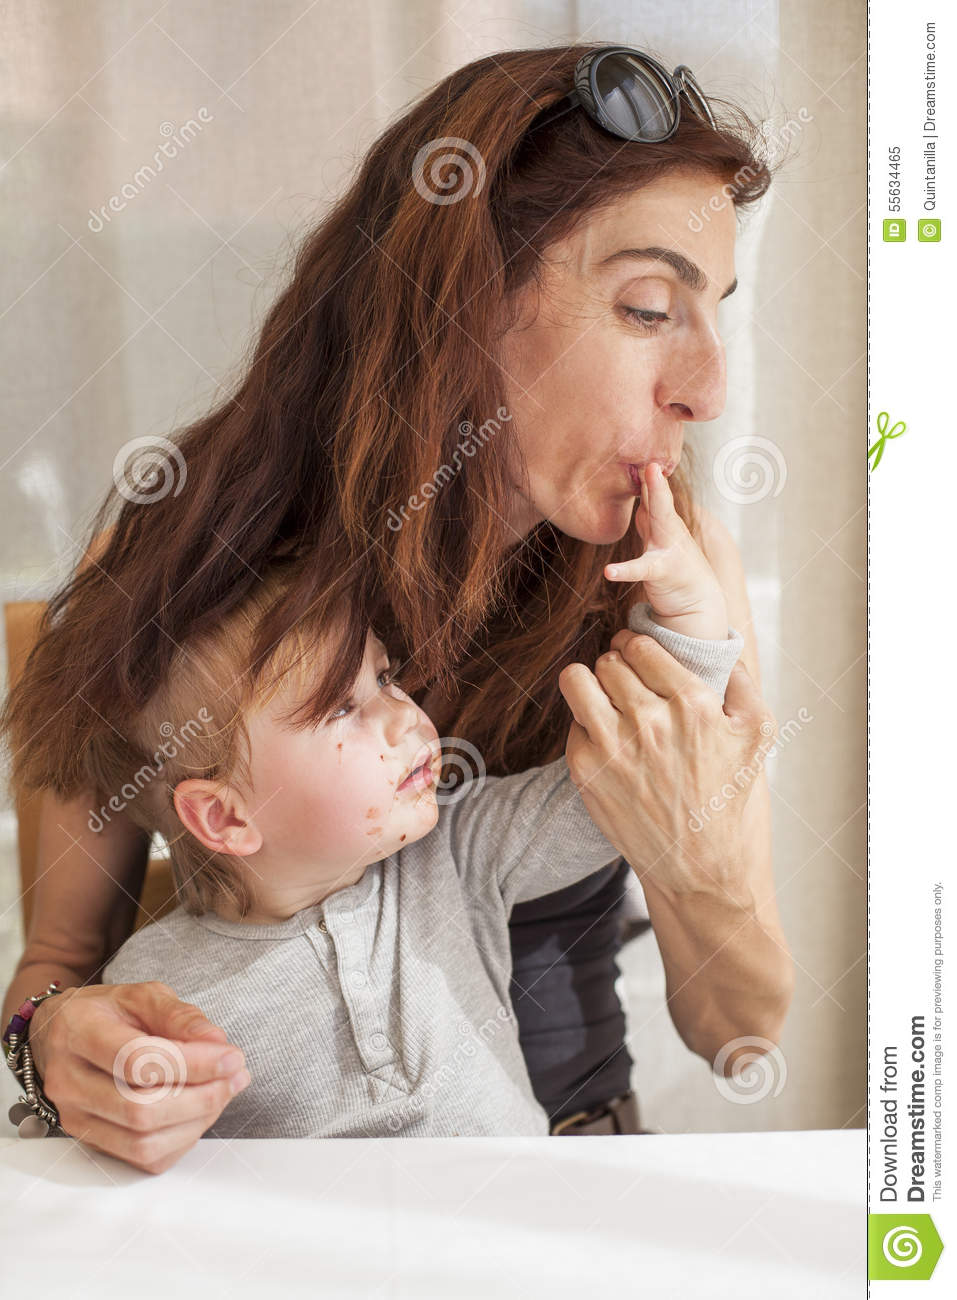 Brunette women mother with sunglasses on head sucking finger of her blonde  baby two years old age with grey shirt and chocolate smeared face sitting  in ...